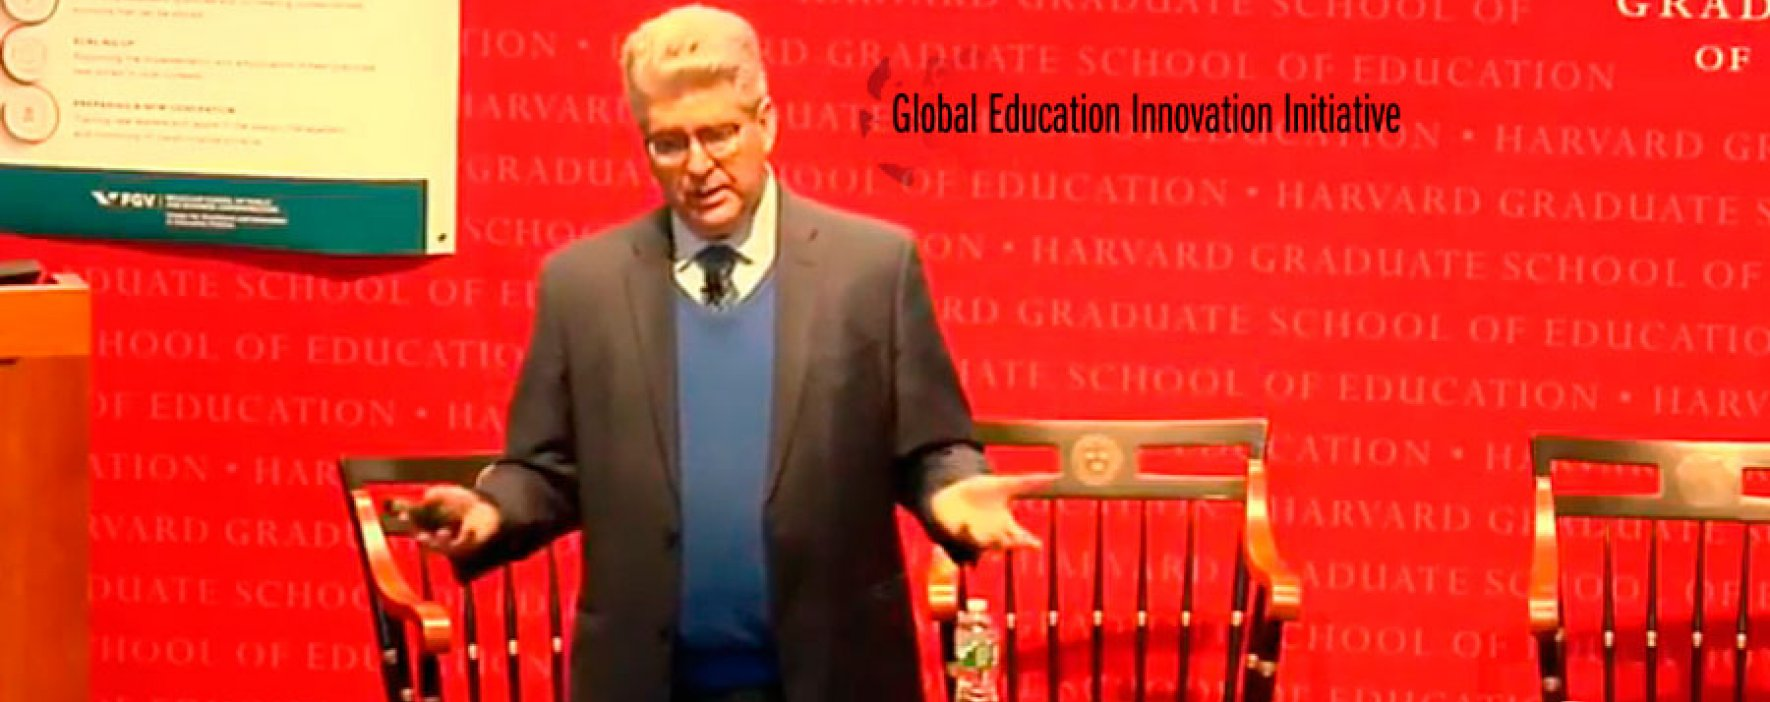 Fundación Compartir hace parte de Global Education Innovation Initiative